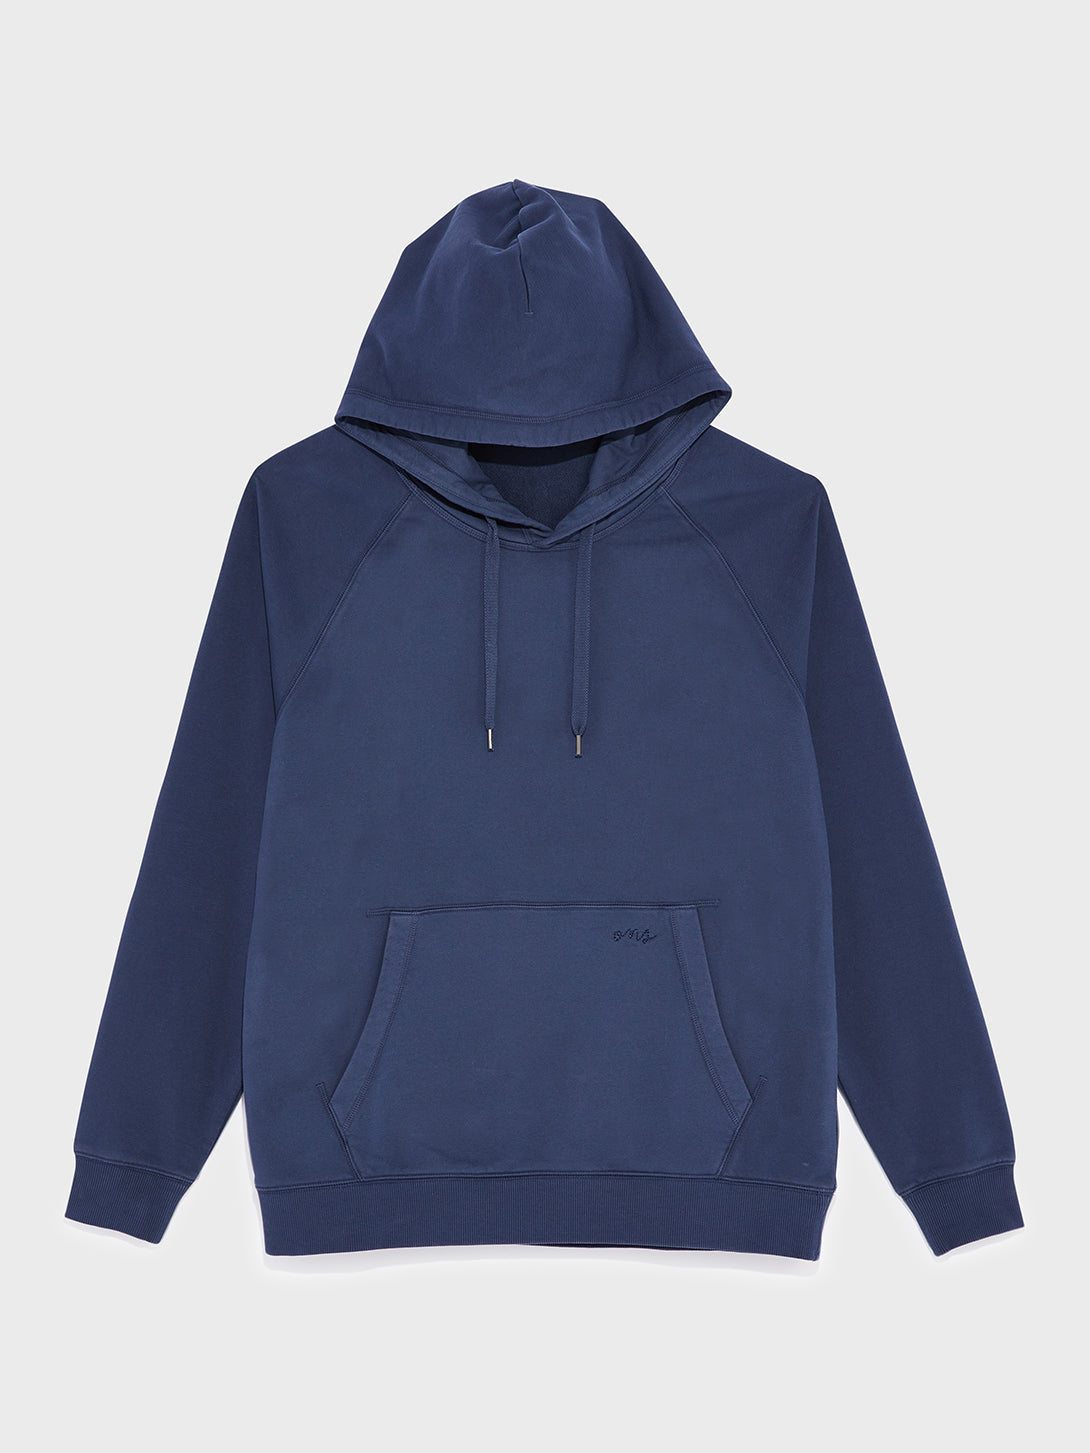 ONS Clothing Men's hoodie in NAVY black friday deals